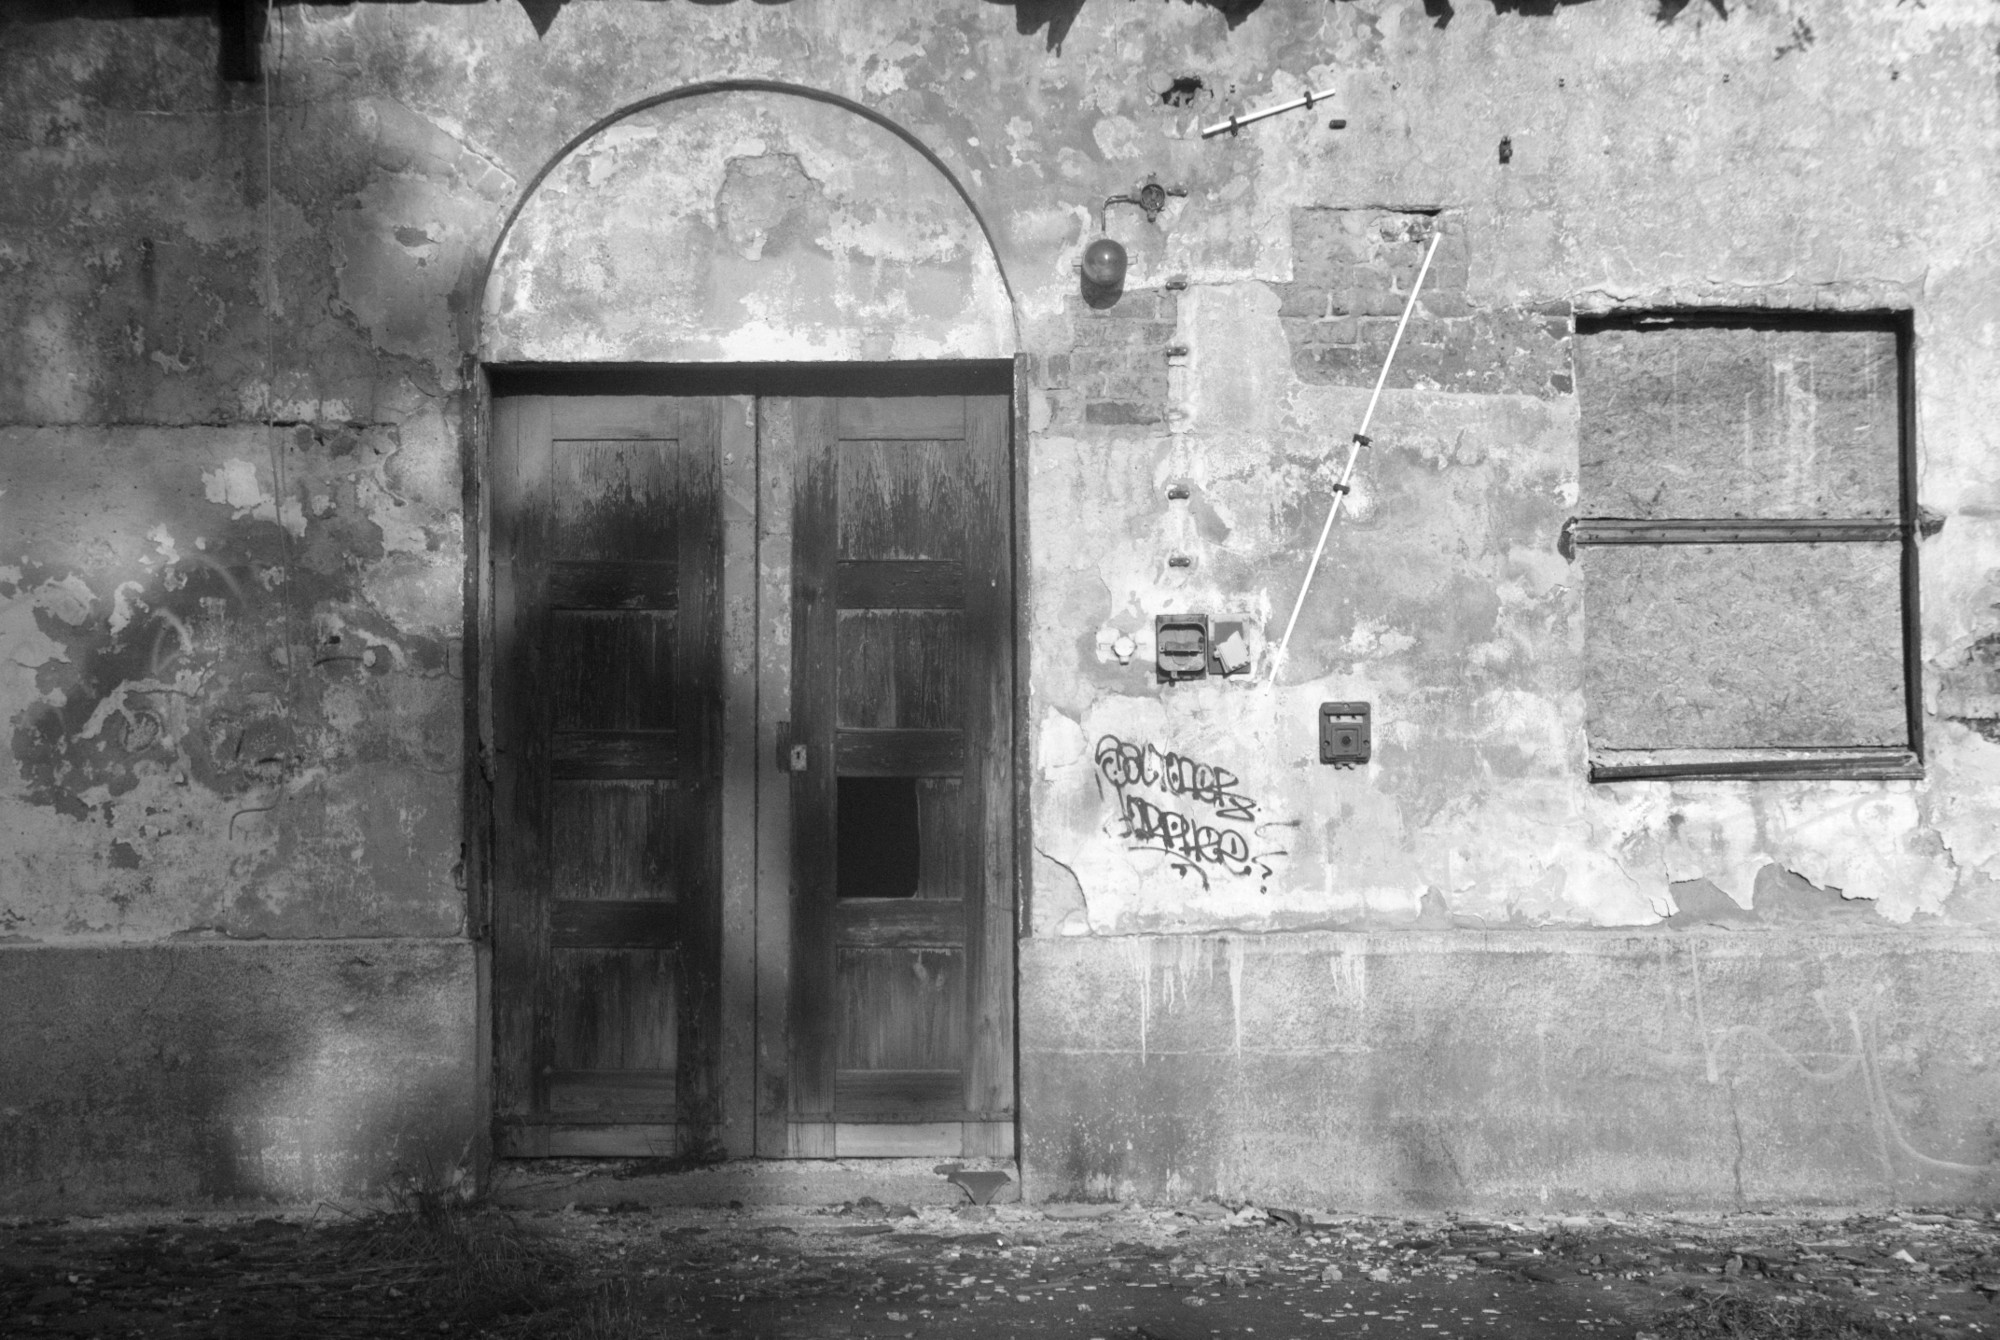 Door and graffiti